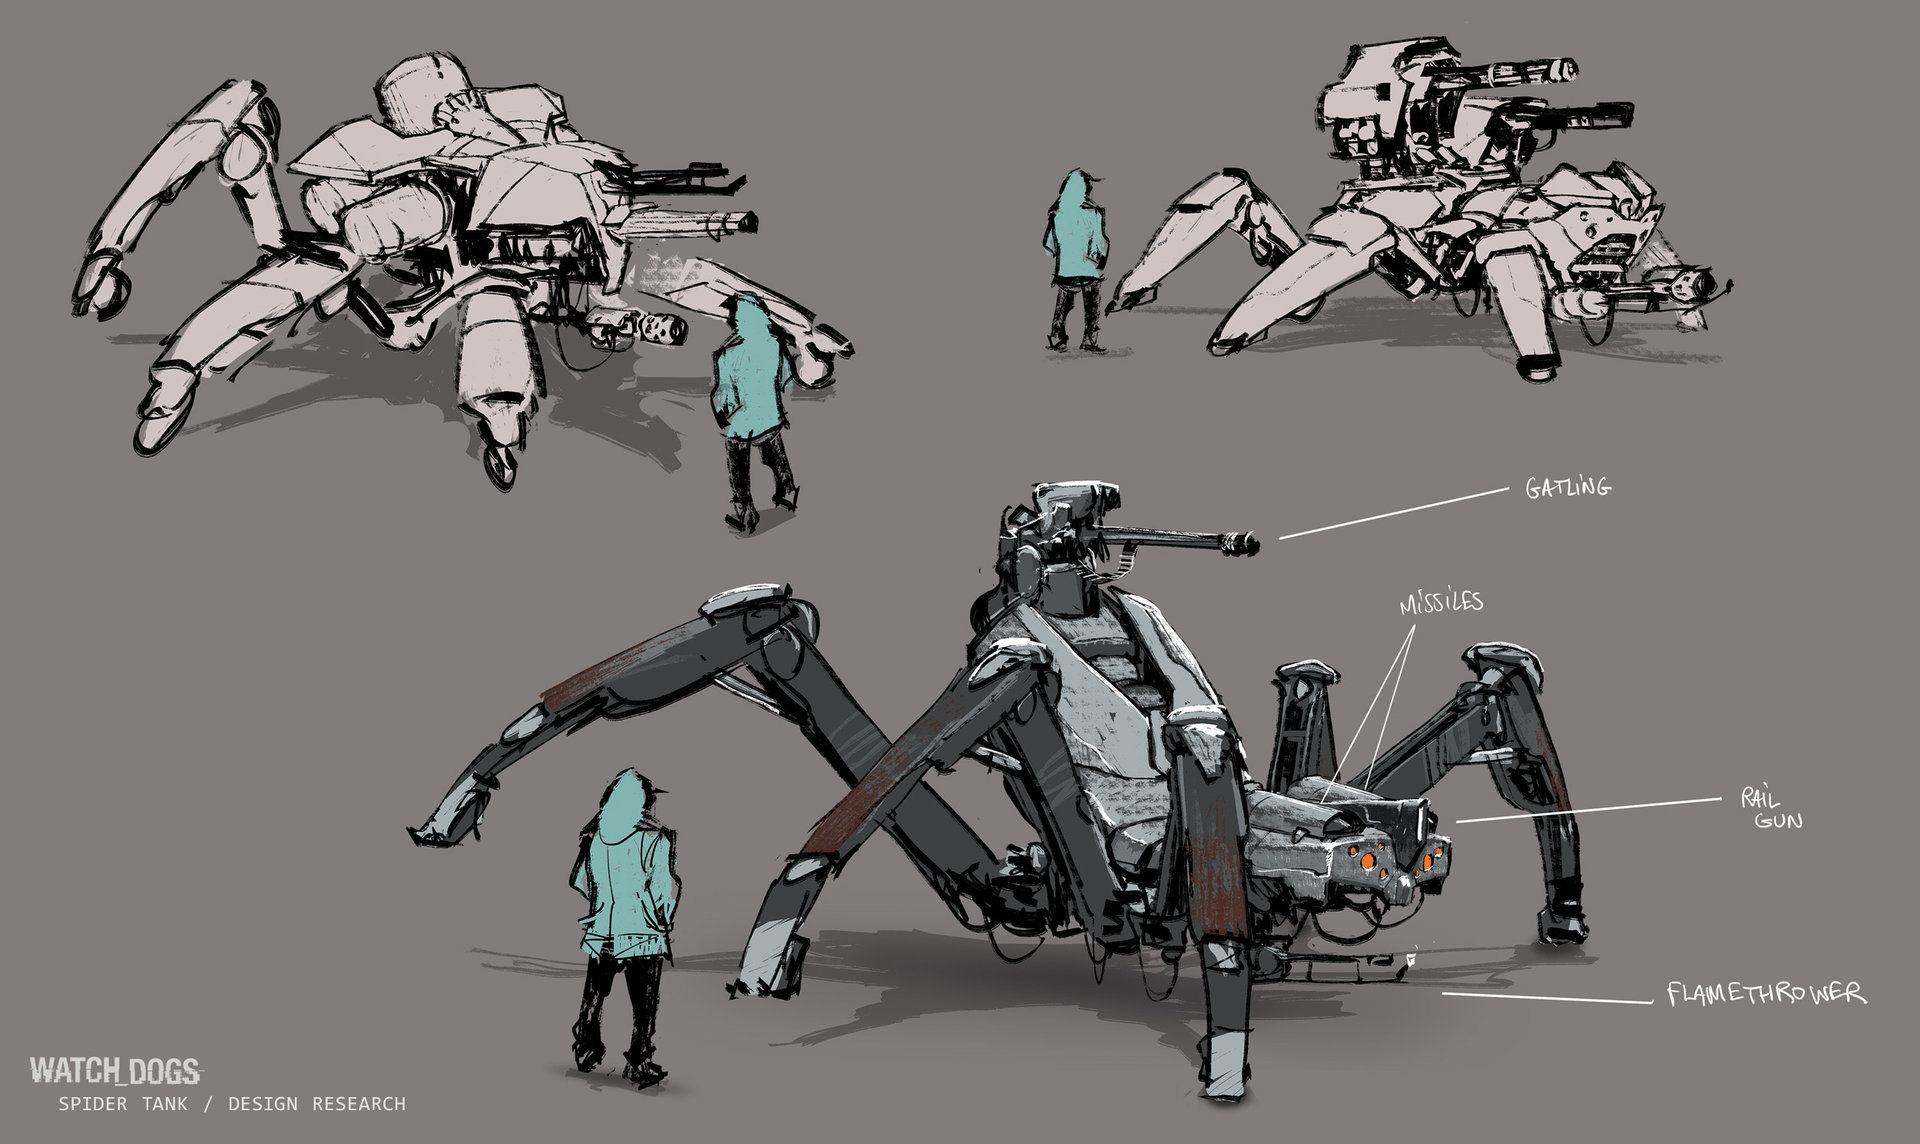 Spider Mech Watch Dogs